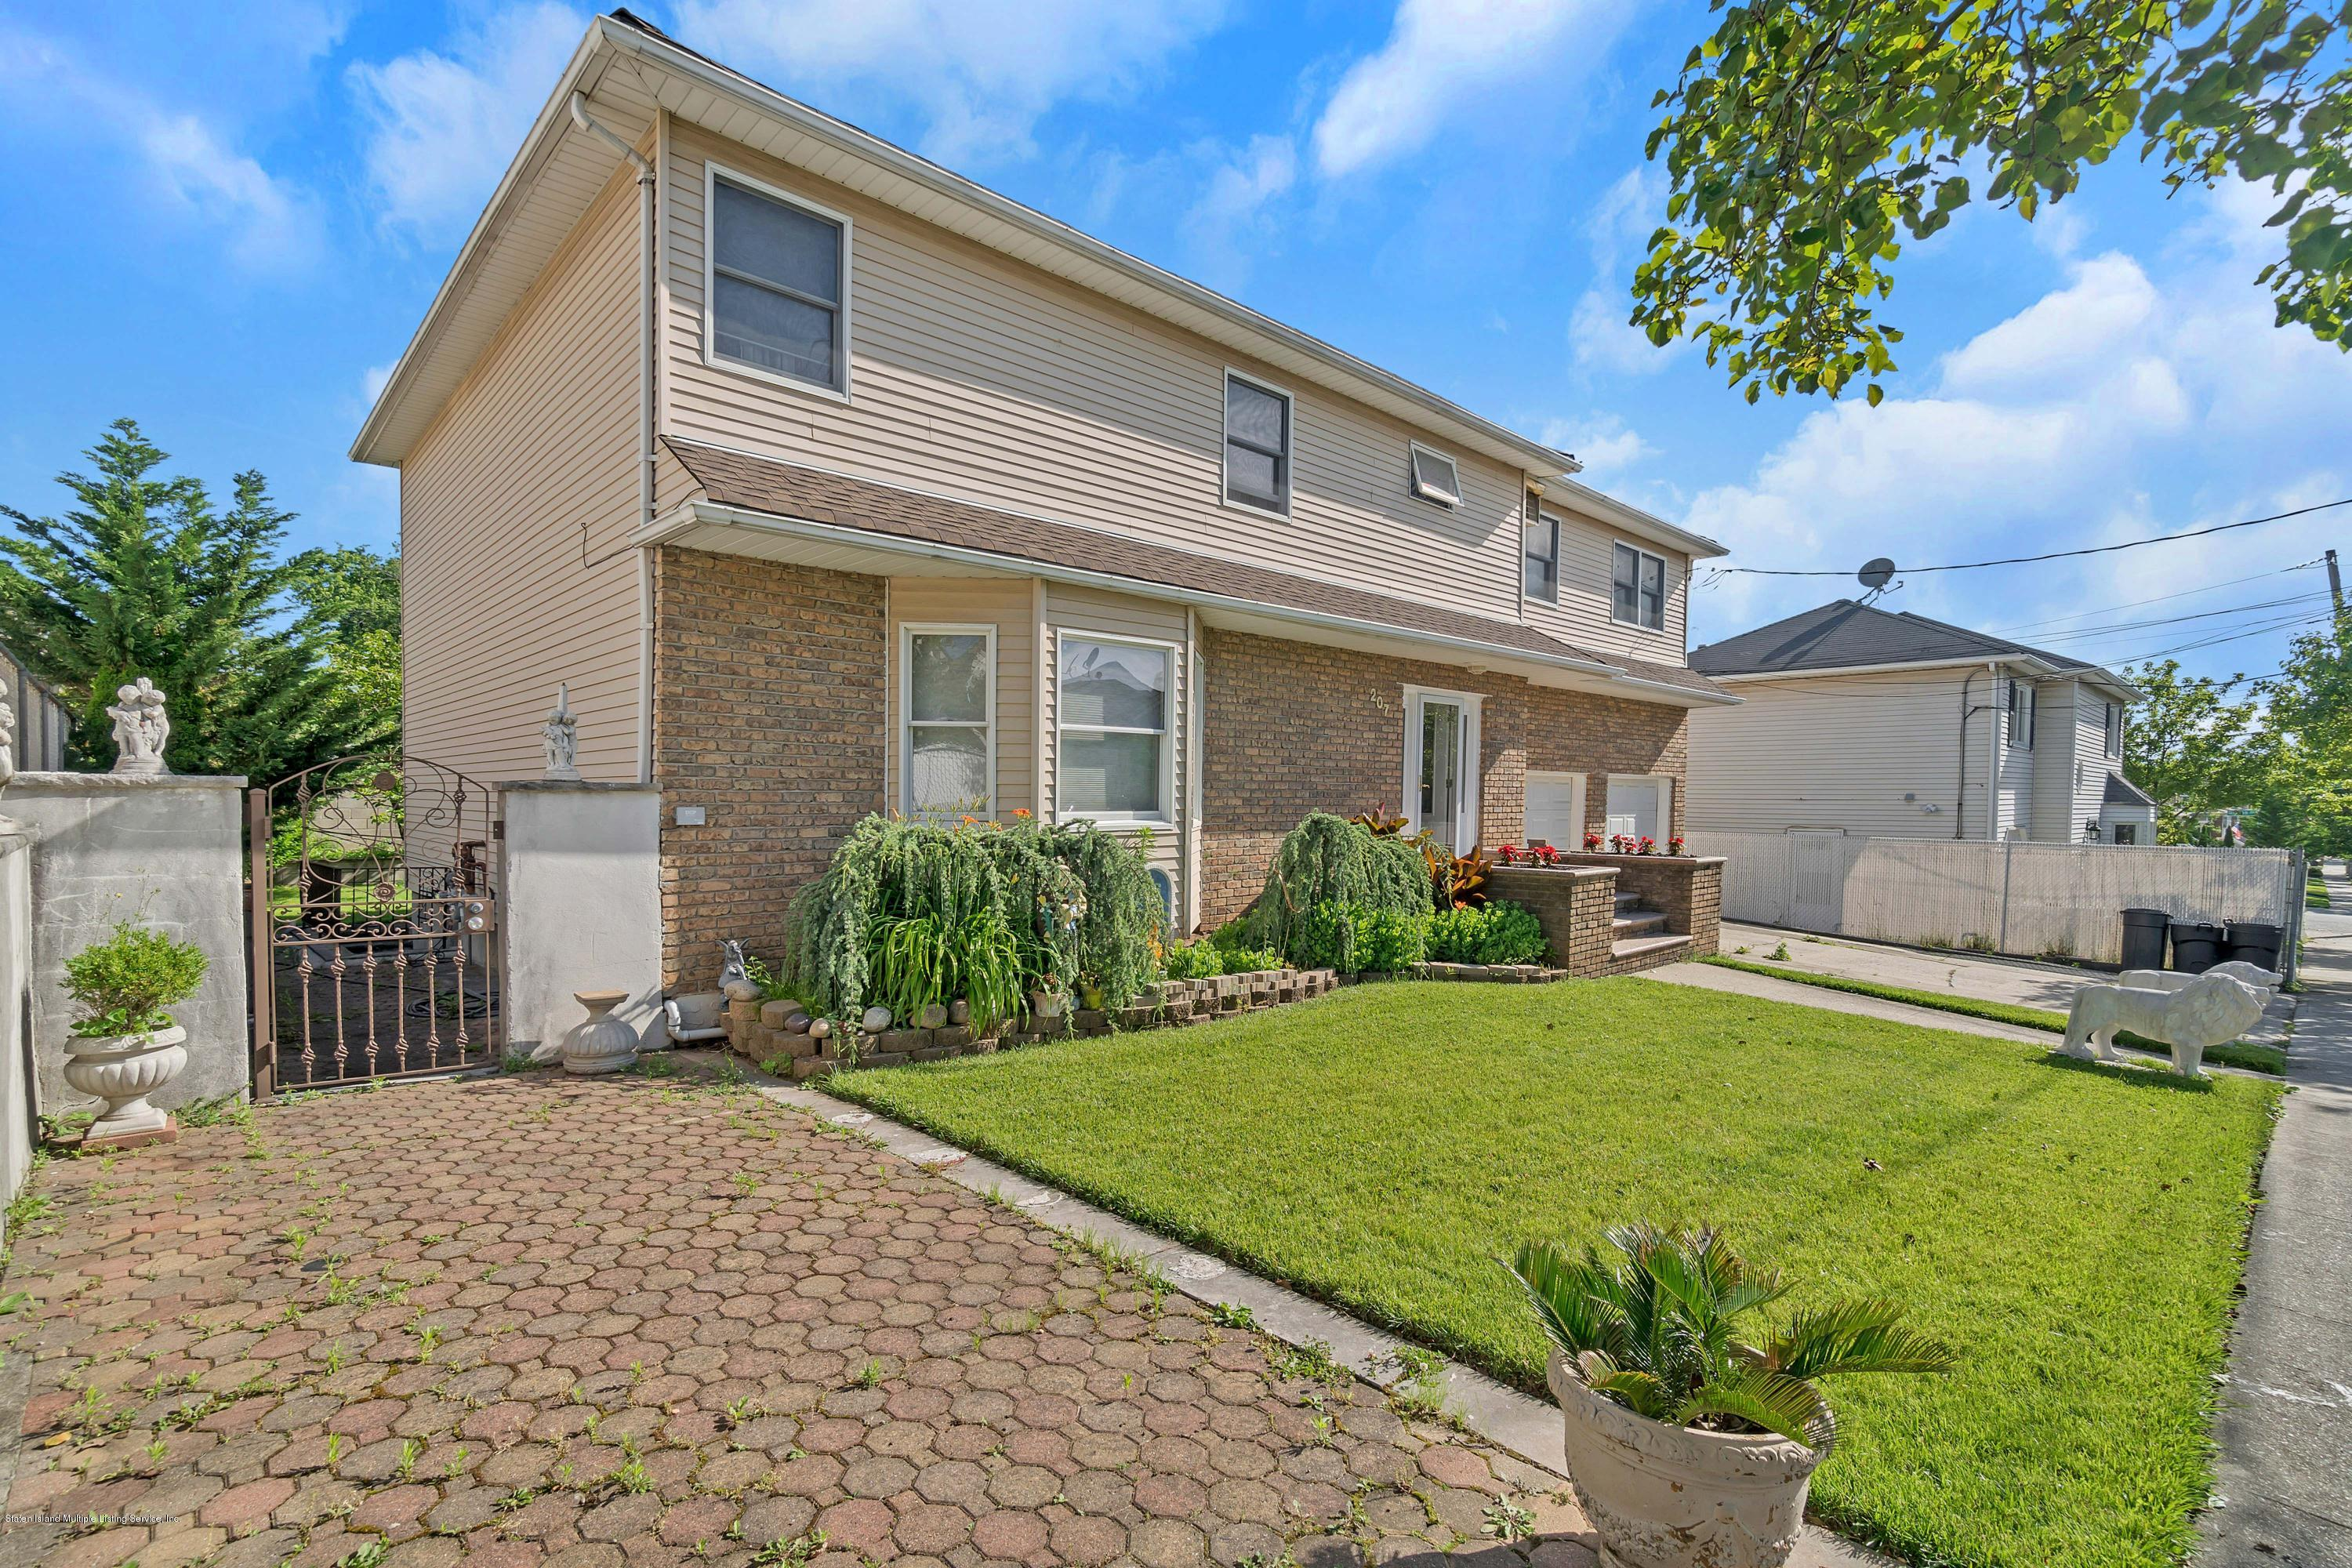 Two Family - Detached 207 Darlington Ave   Staten Island, NY 10312, MLS-1135189-3